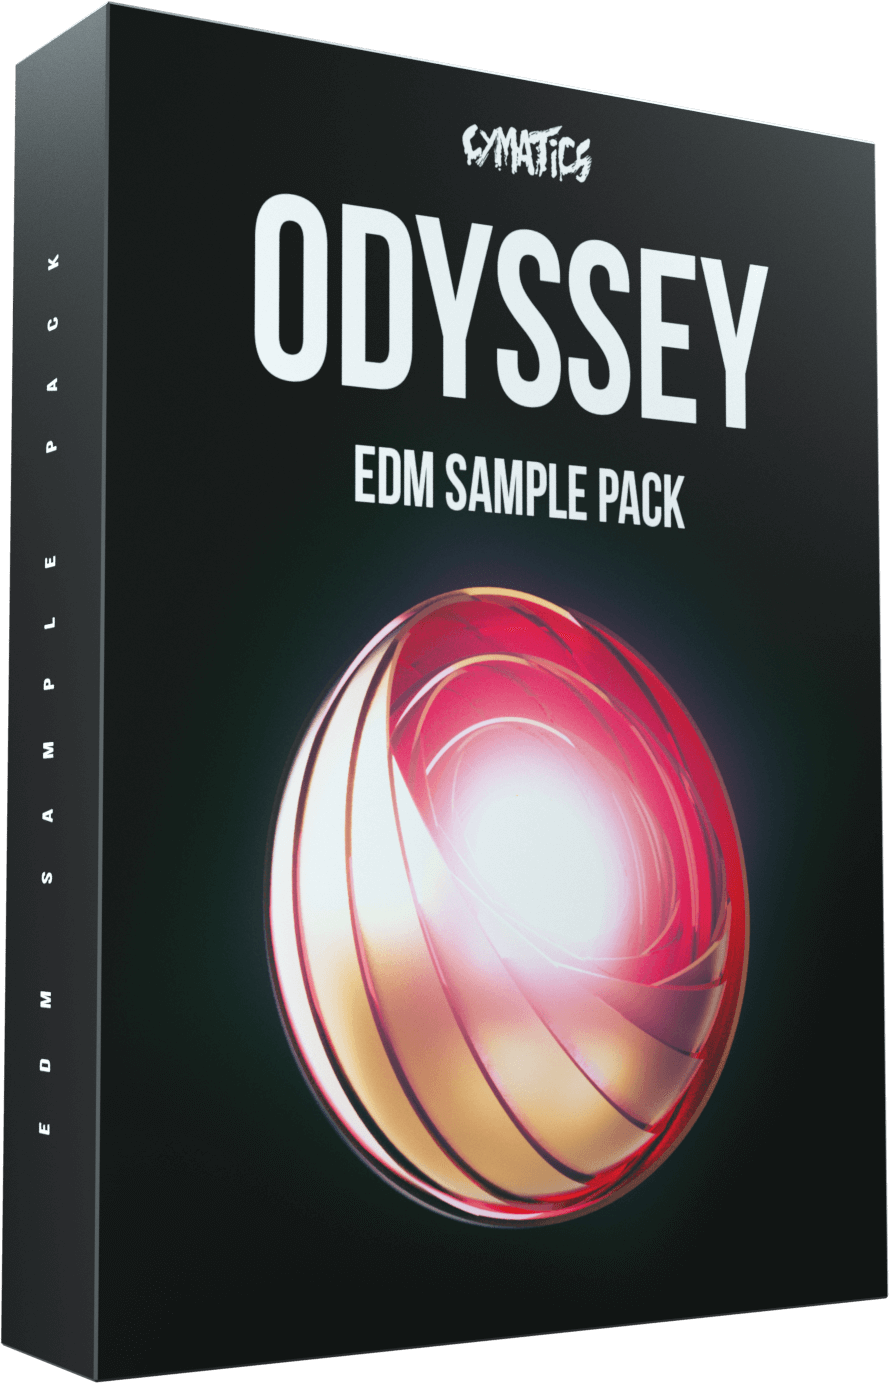 Cymatics Sample Pack Box